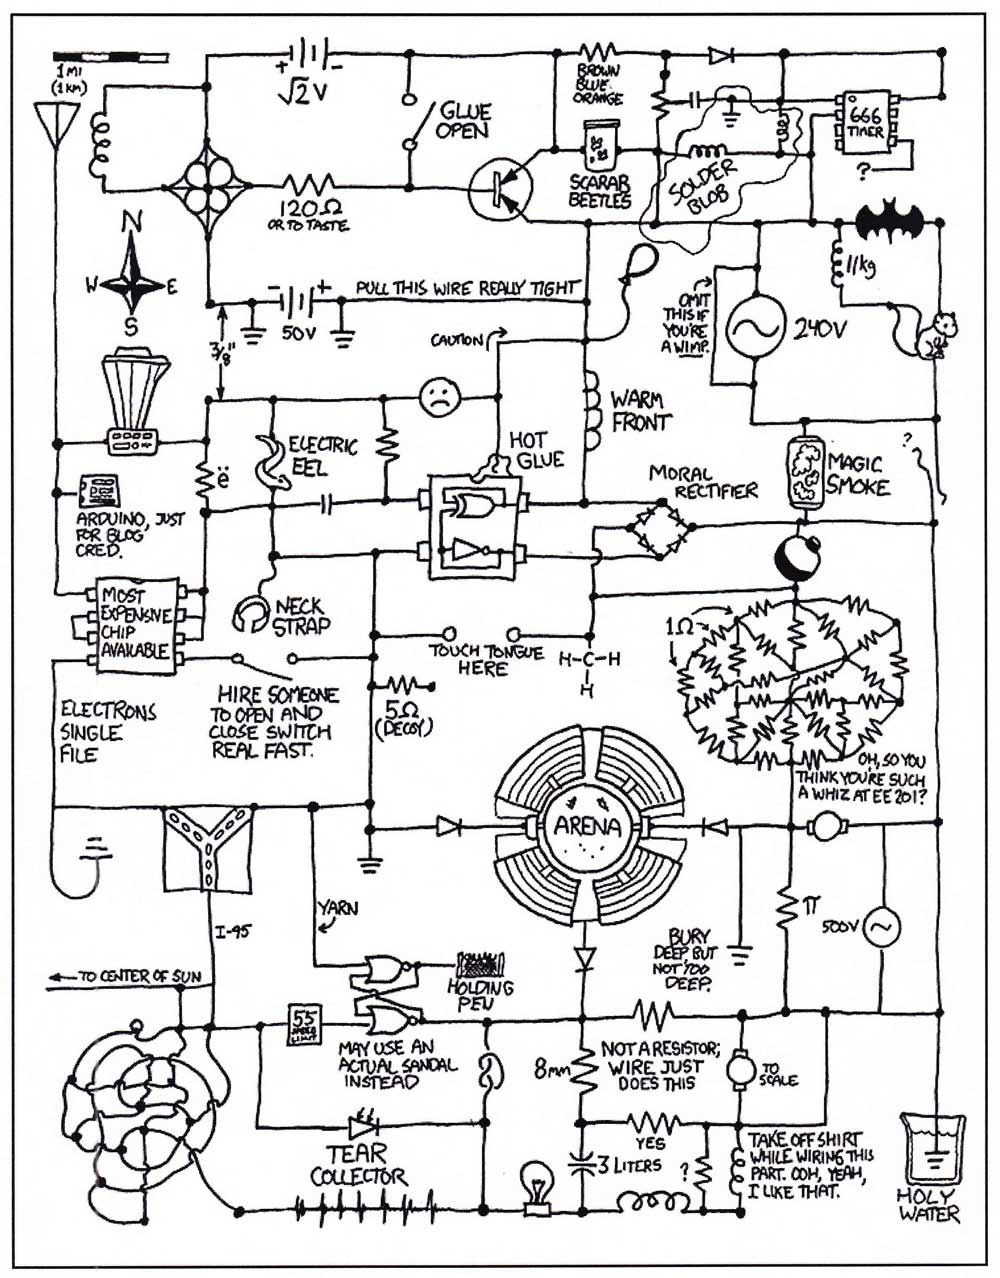 Wiring Diagram Joke Schemes Jd 111 Circuit Will Be A Thing U2022 Rh Exploreandmore Co Uk John Deere Garden Tractor